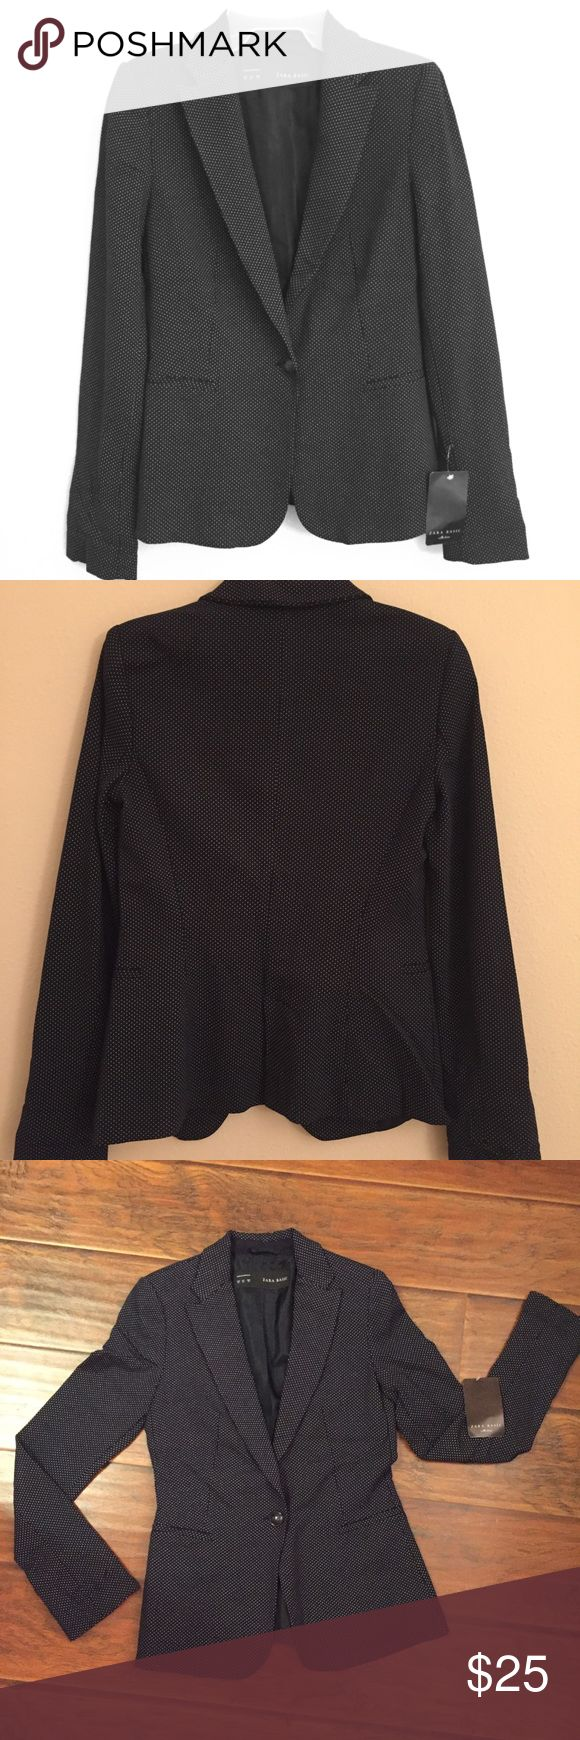 Zara Basic Navy Blazer Jacket Brand new with tag! Basic navy blazer with tiny dots in size XS. Versatile staple piece for wardrobe, can be dressed up or down. Zara Jackets & Coats Blazers